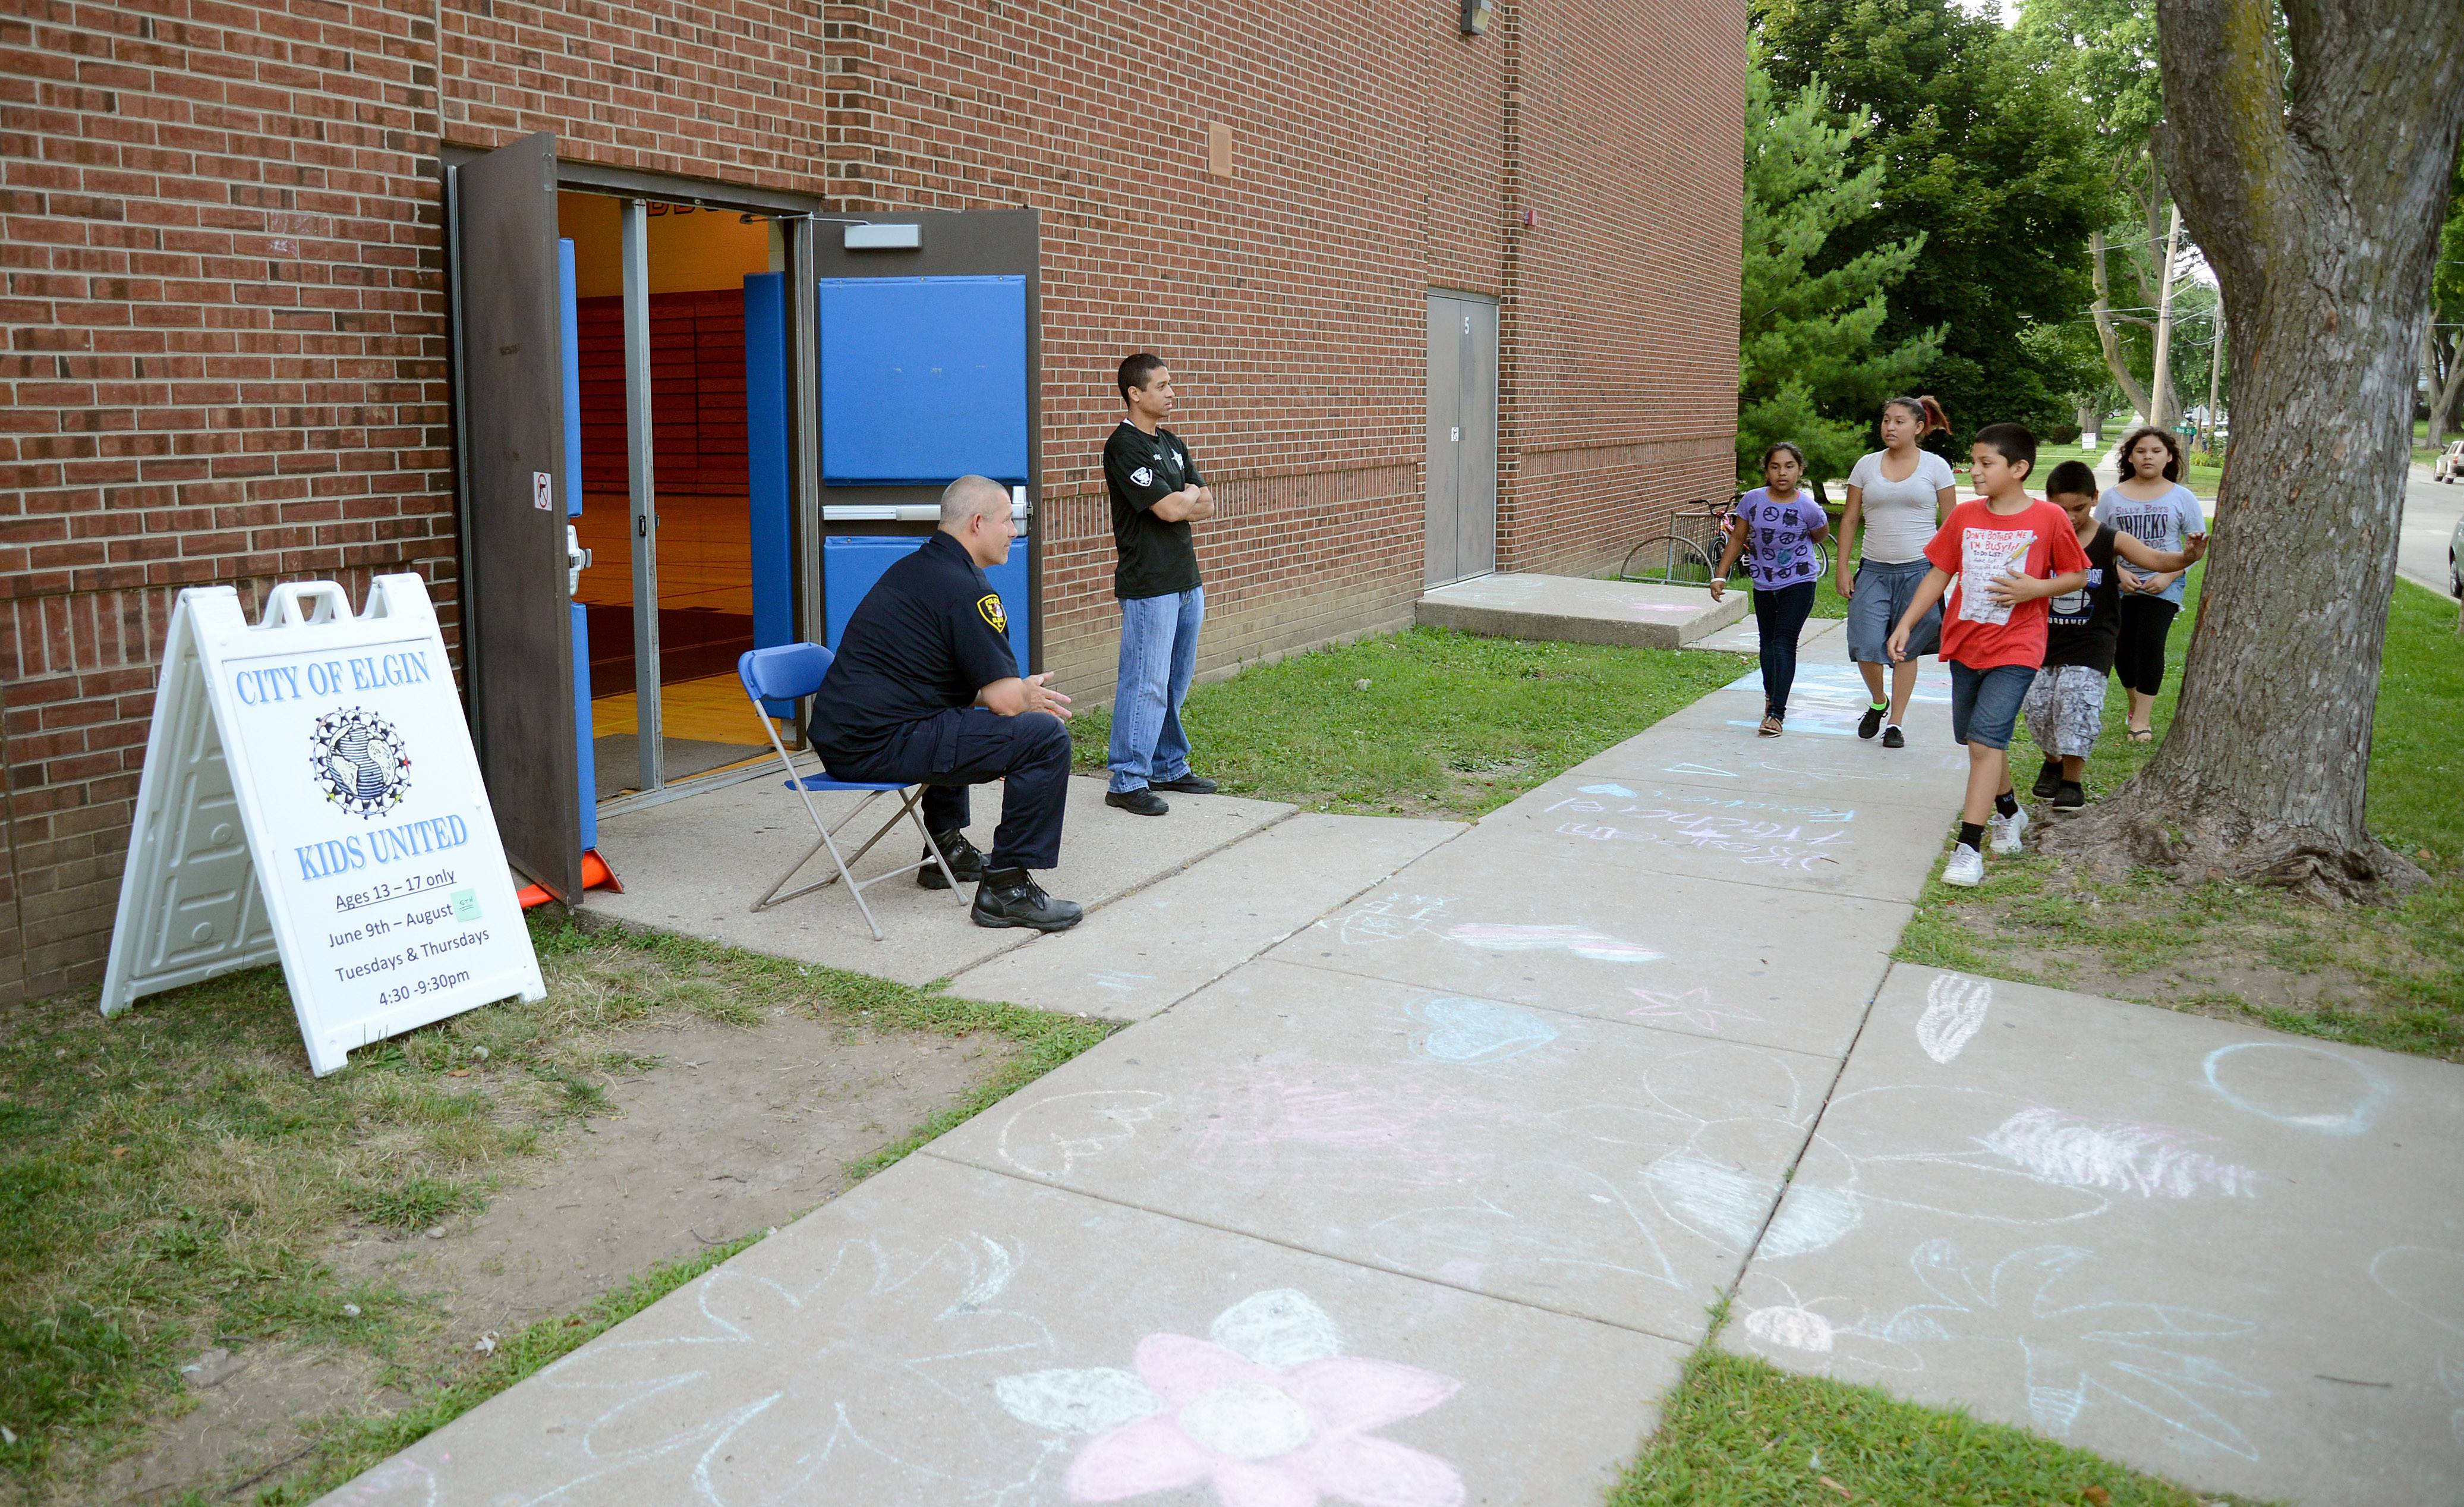 Elgin police officers talk to kids Tuesday as they walk past the entrance to the police department's Kids United program at Abbott Middle School in Elgin. A couple of the children made the drawings on the previous night. Different age groups attend on different nights of the week.